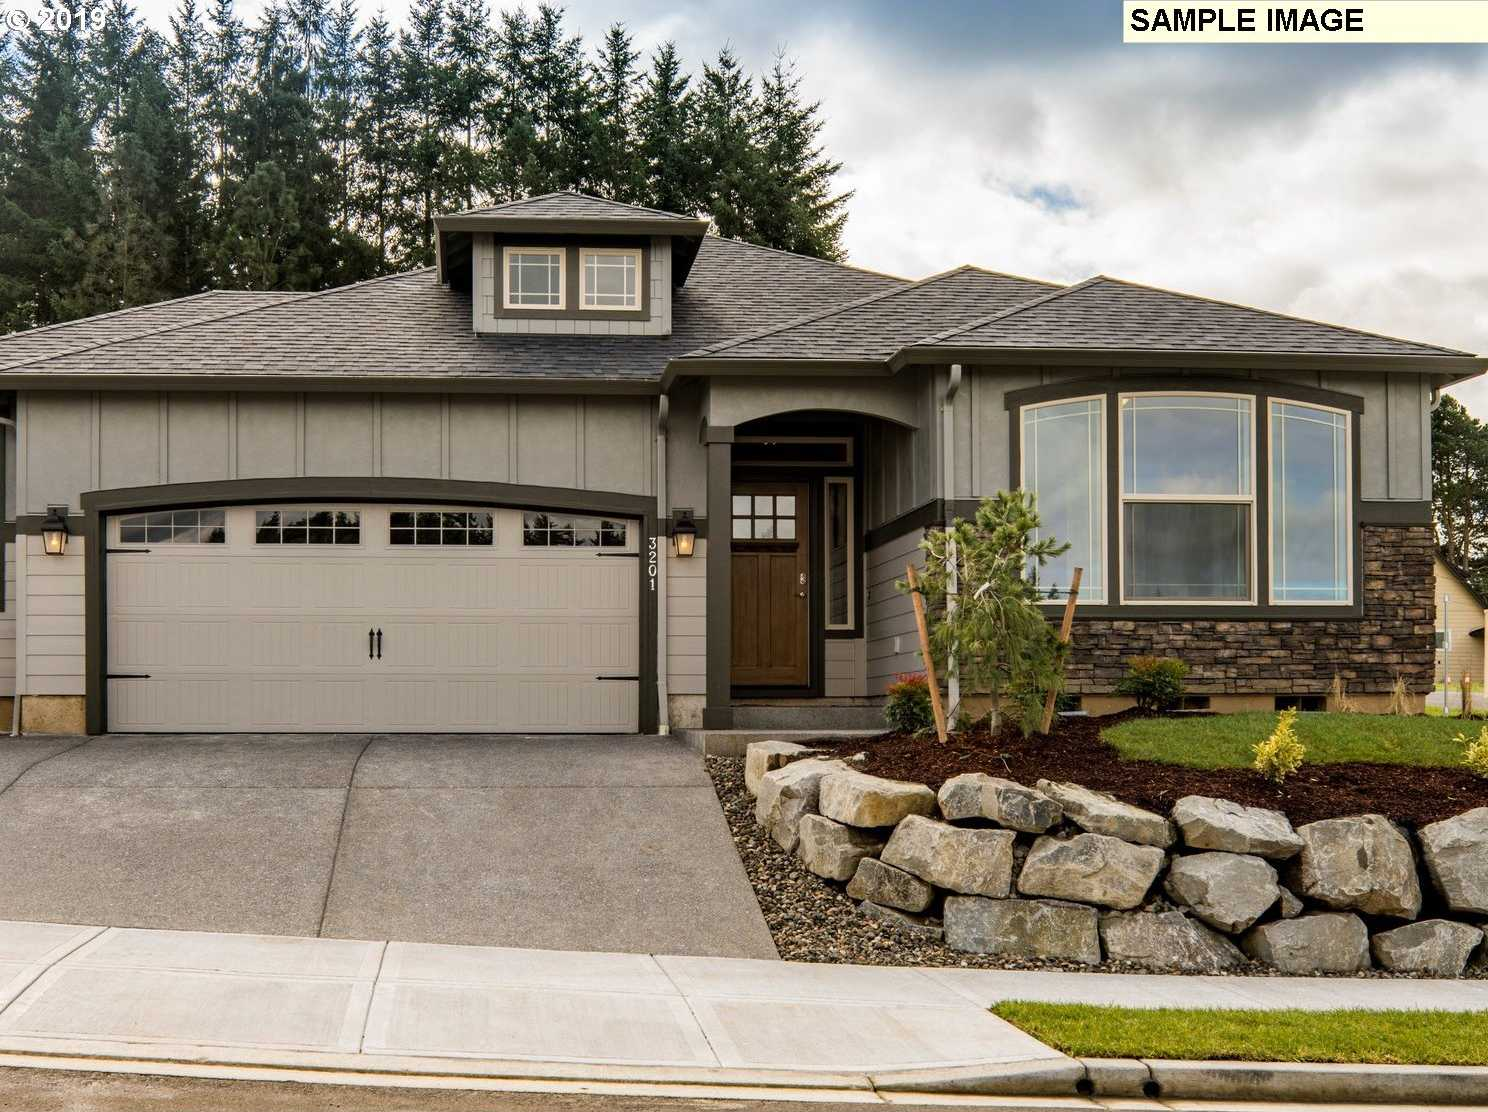 $496,000 - 3Br/2Ba -  for Sale in Tigard